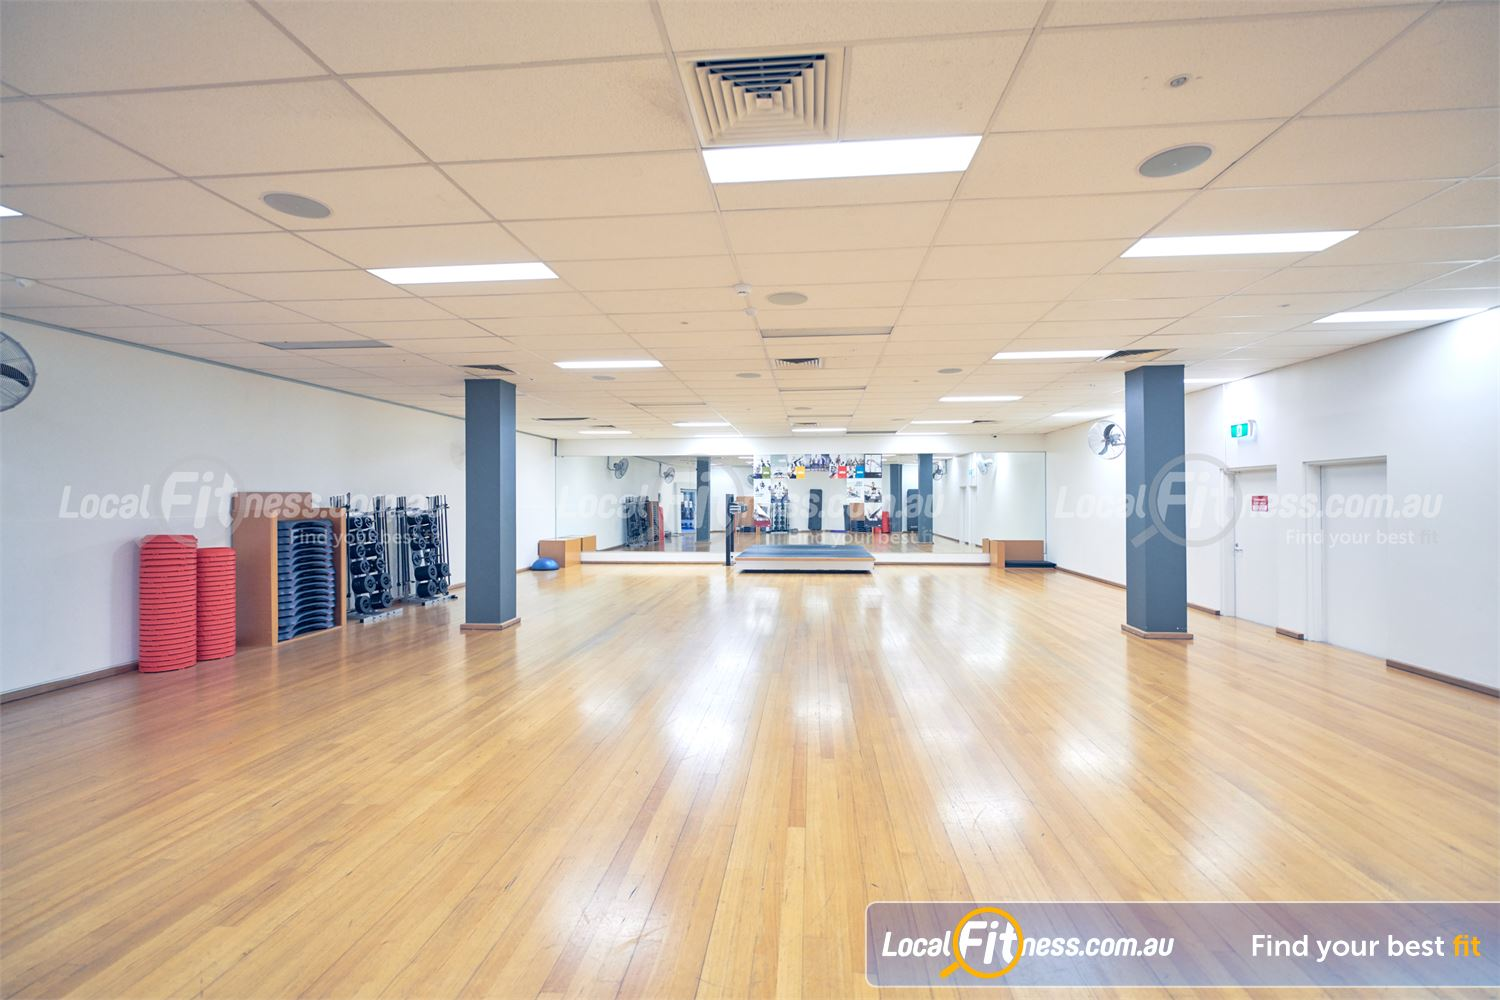 Goodlife Health Clubs Knox City Near Wantirna Popular classes inc. Les Mills and Wantirna South Zumba.